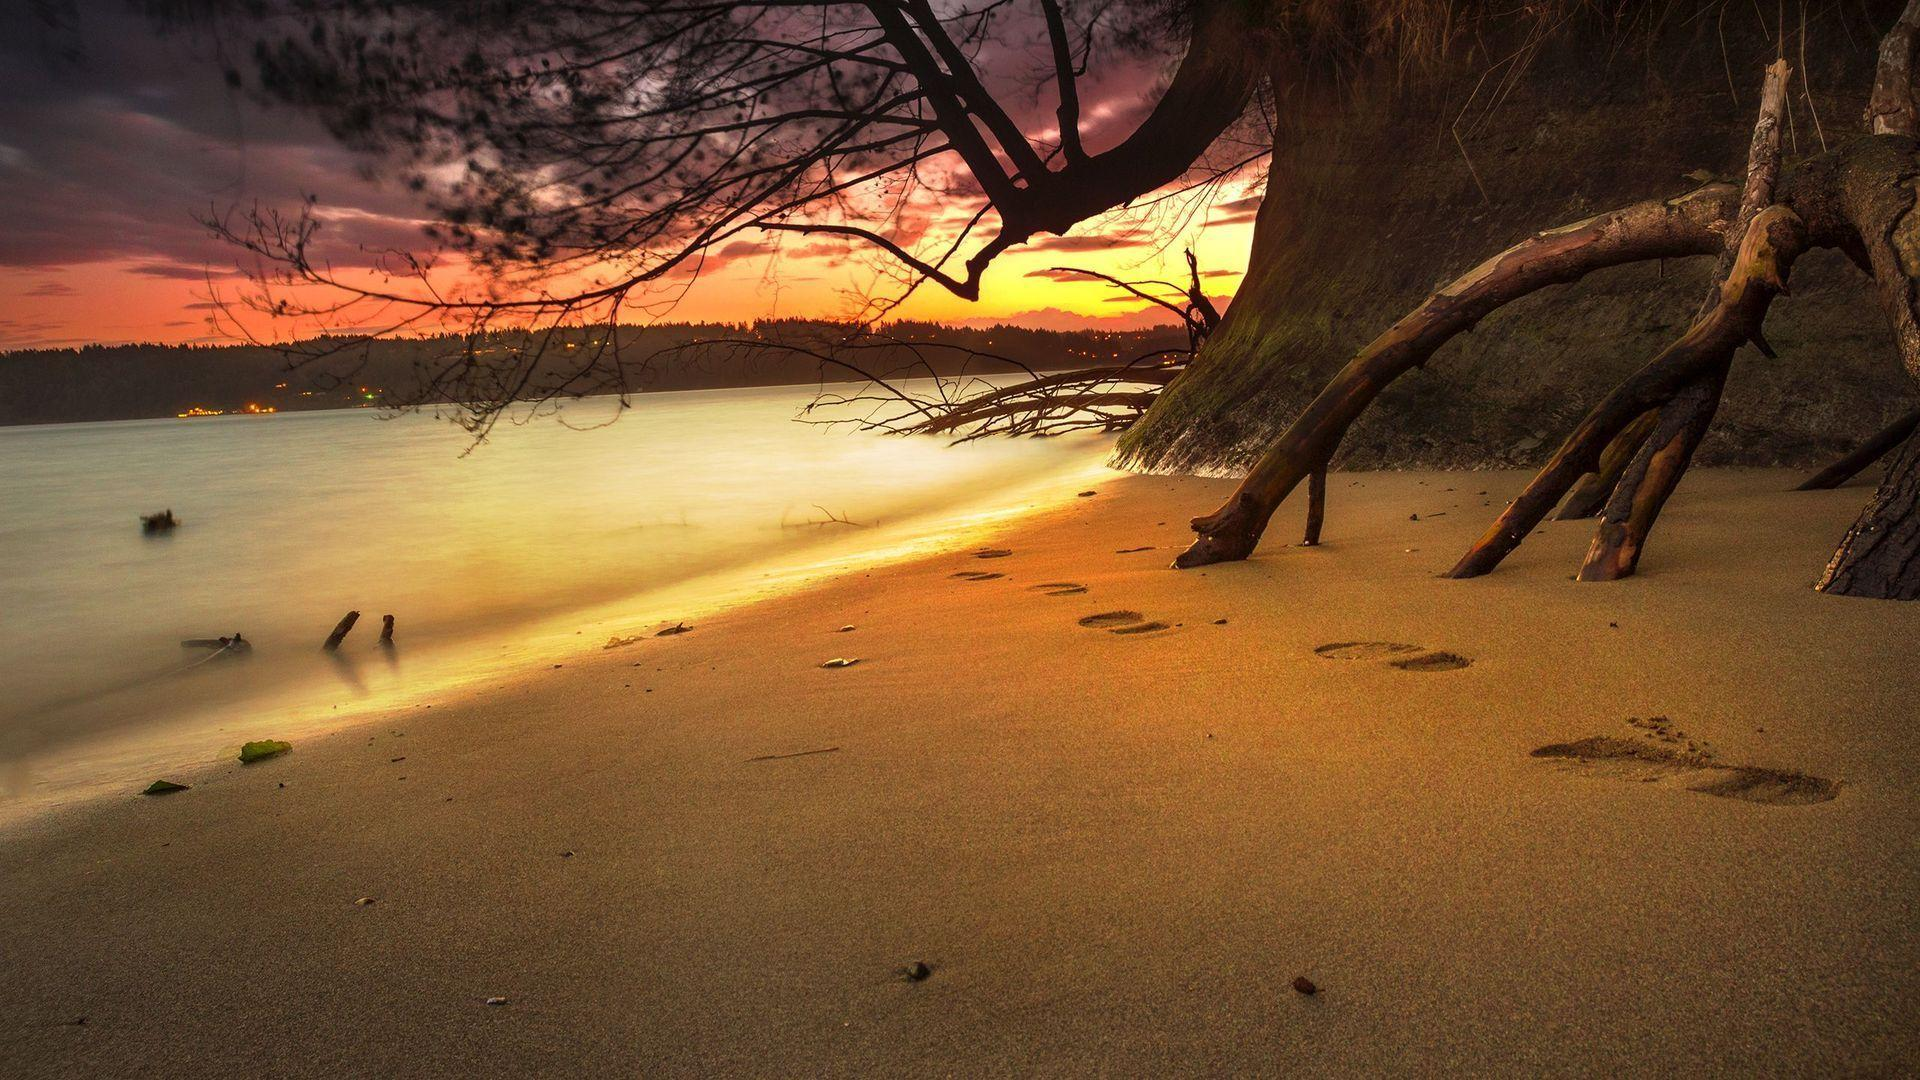 Christian Hd Wallpapers For Android Footprints In The Sand Wallpapers Wallpaper Cave